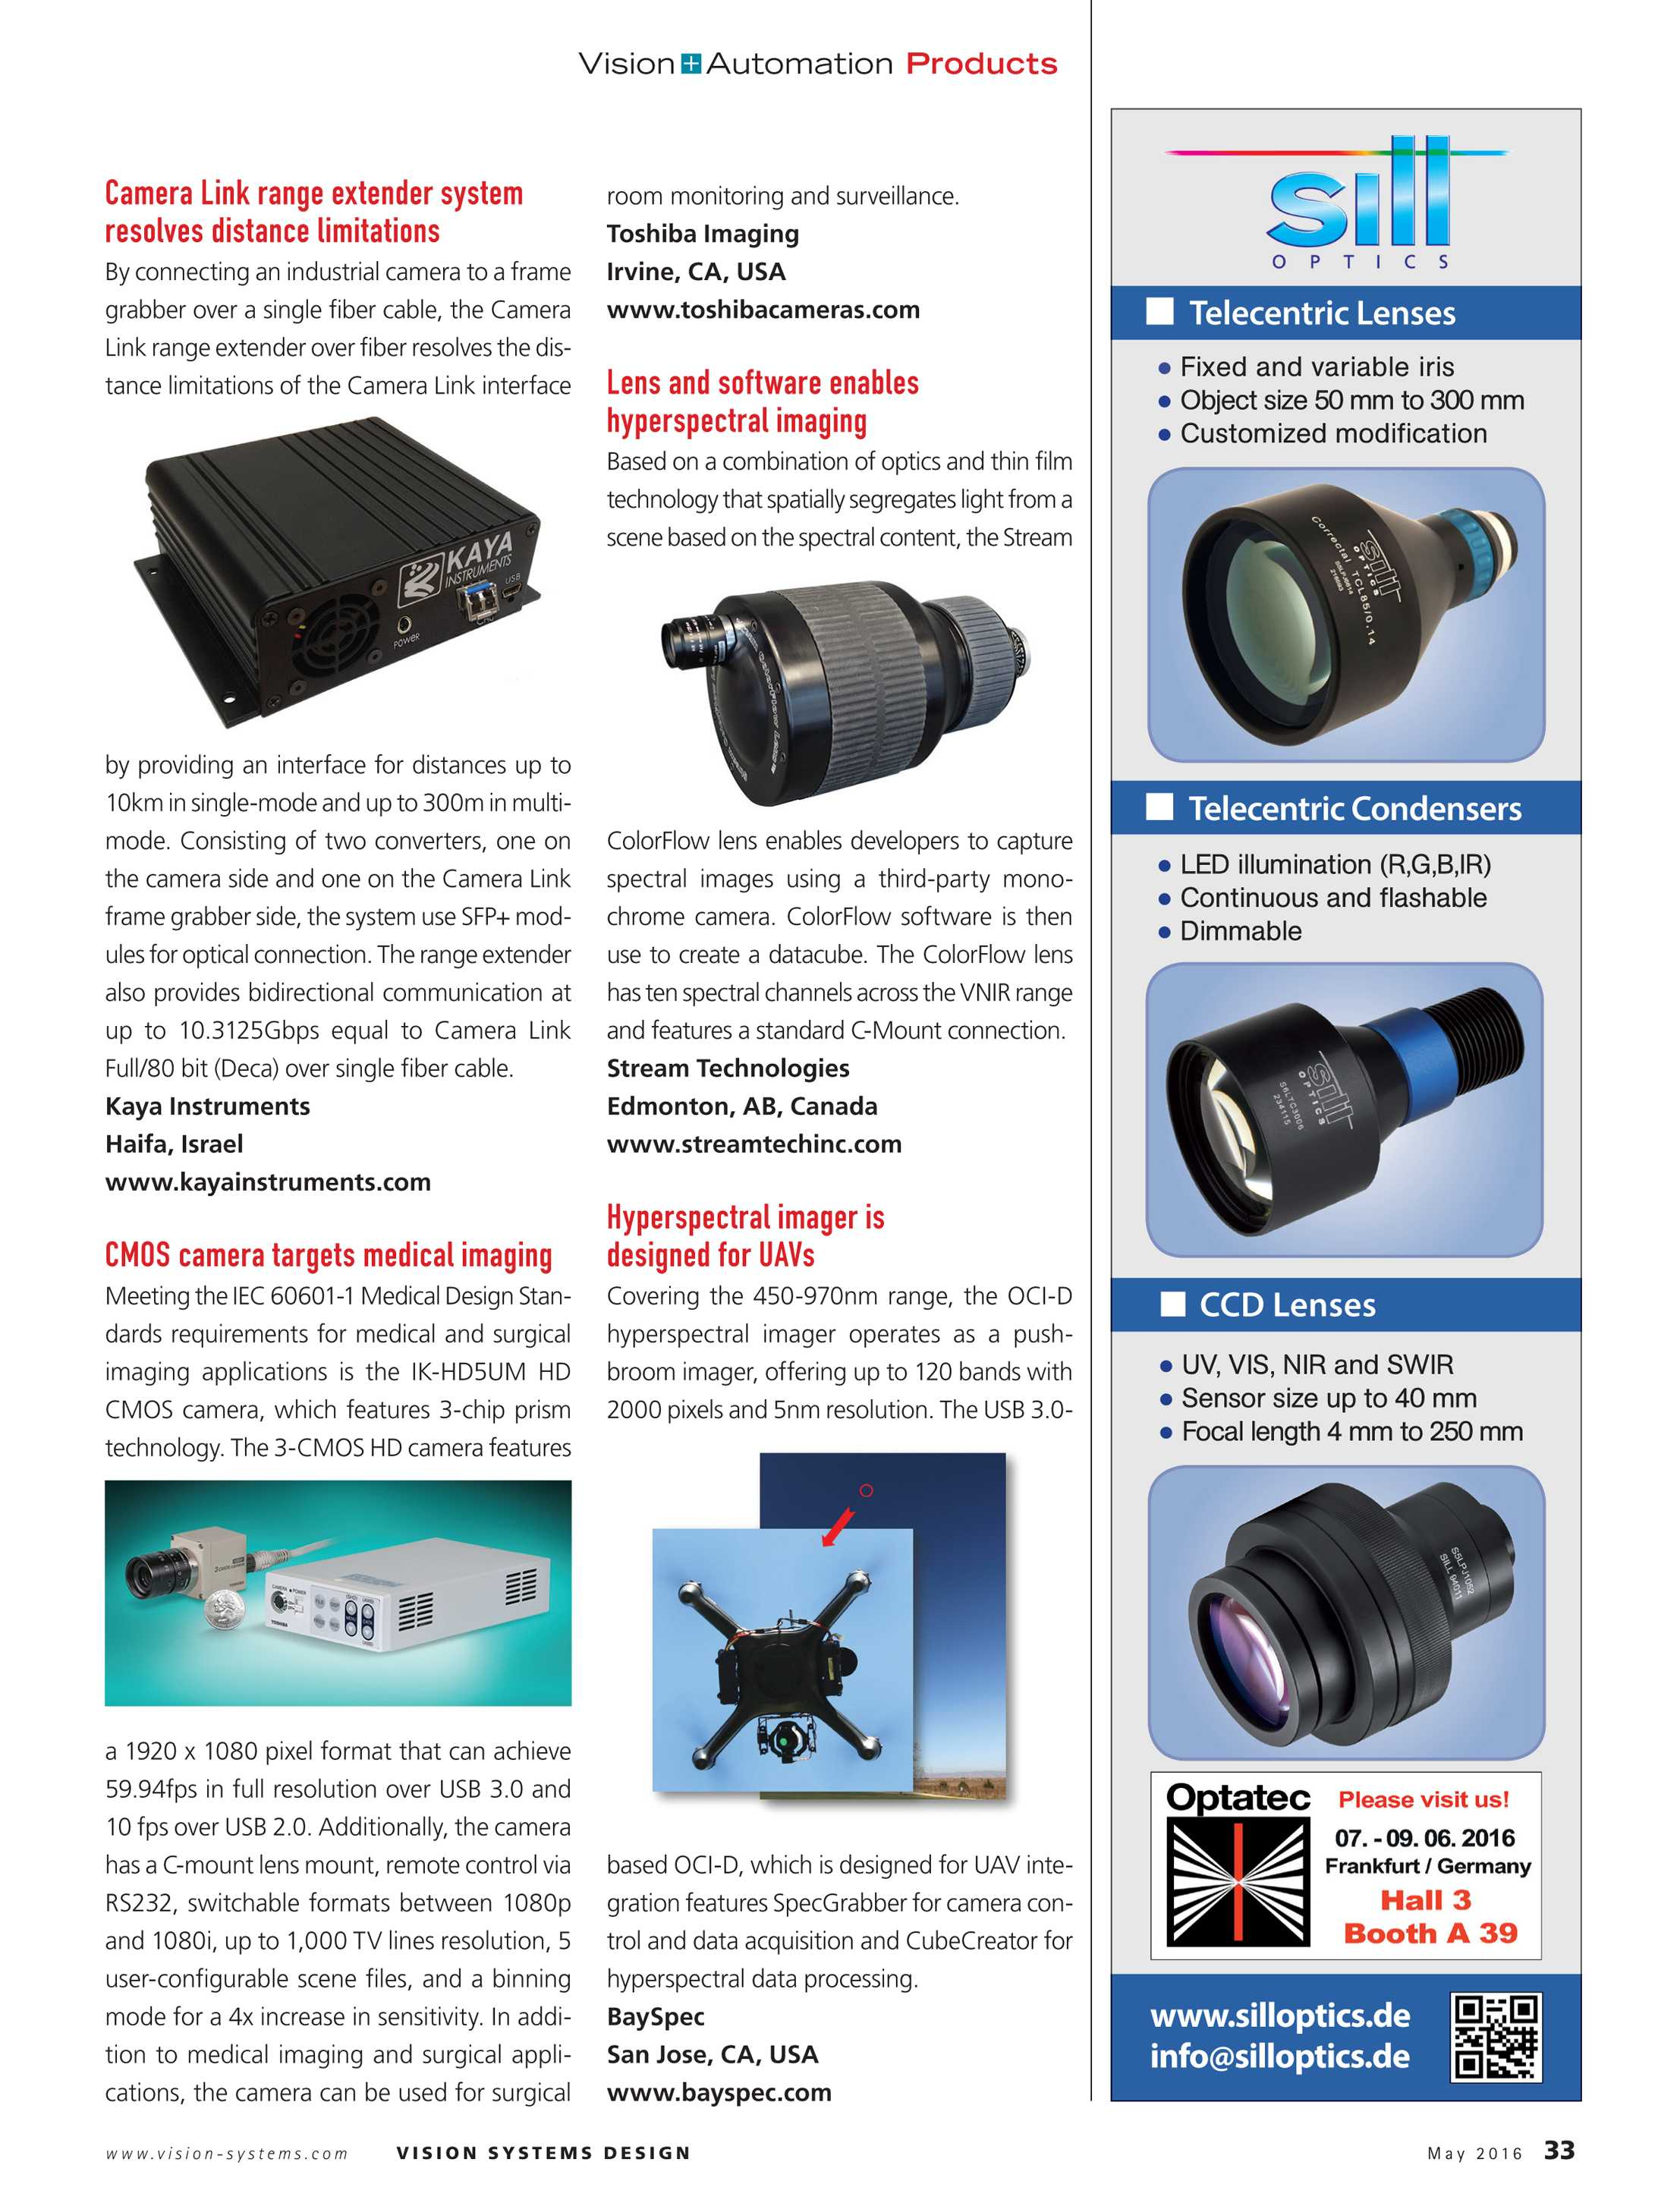 Vision Systems - May 2016 - page 33